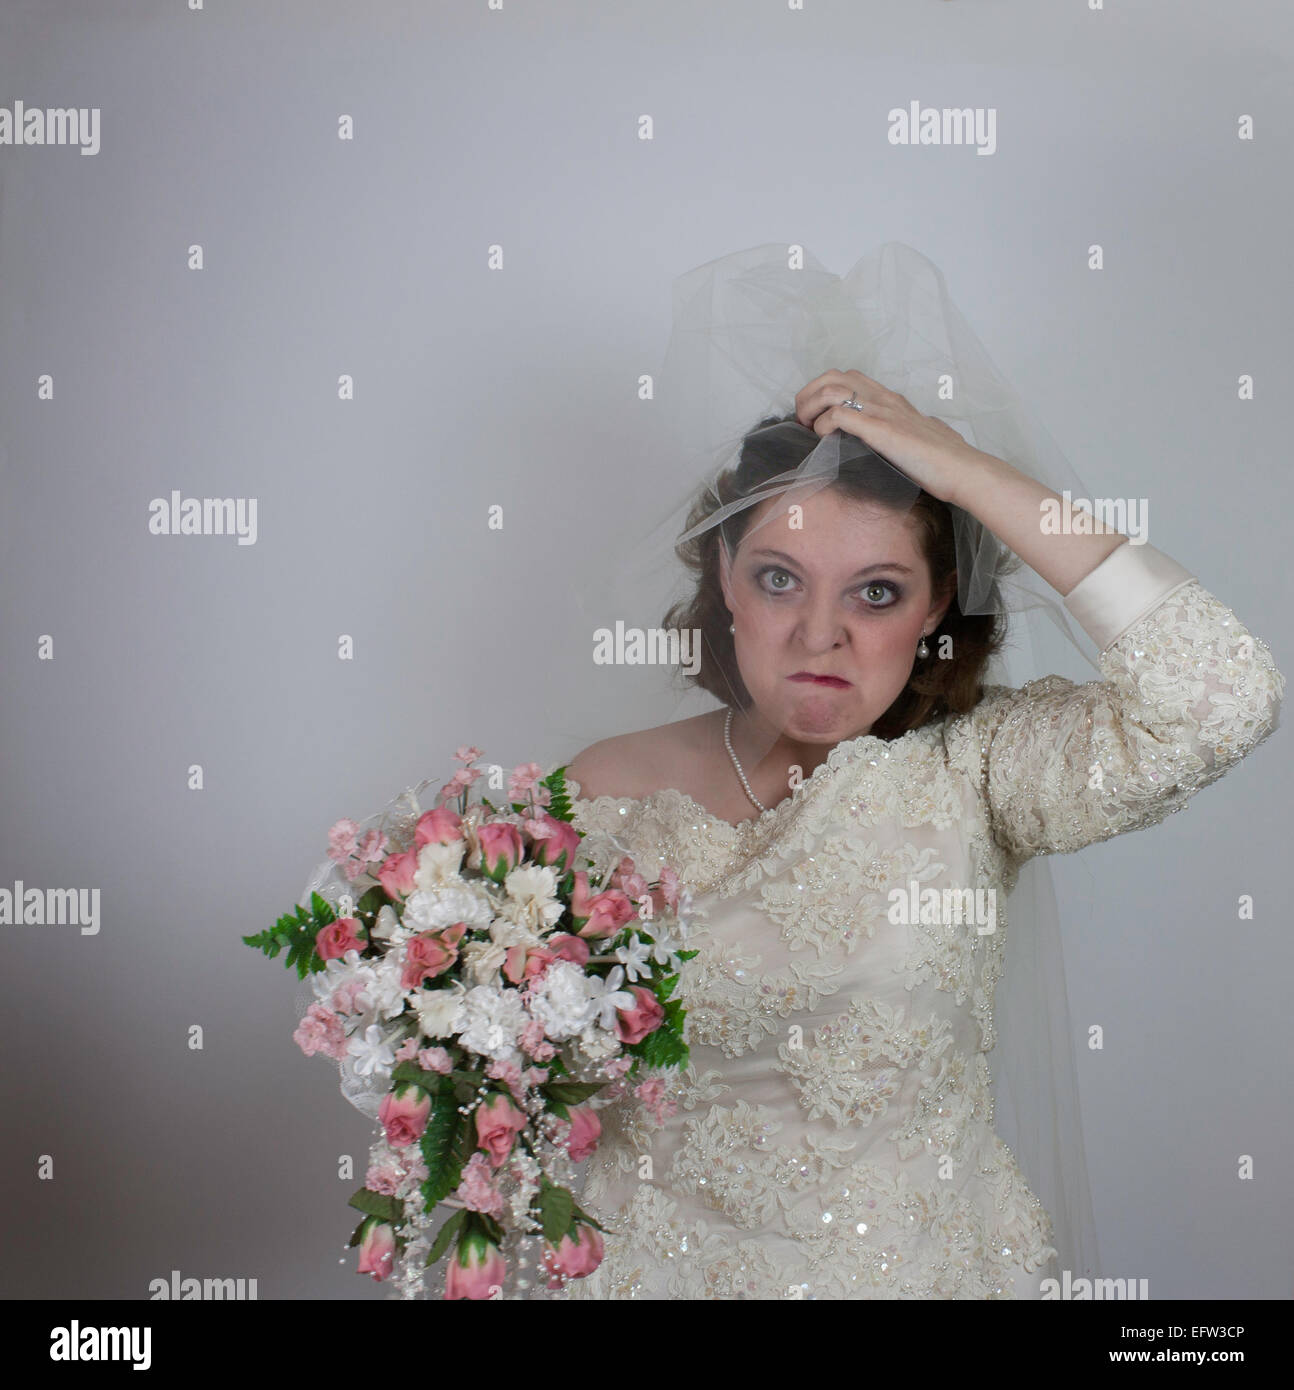 Young bride makes a stressful face and holds bouquet as she grips her veil in her hand. - Stock Image